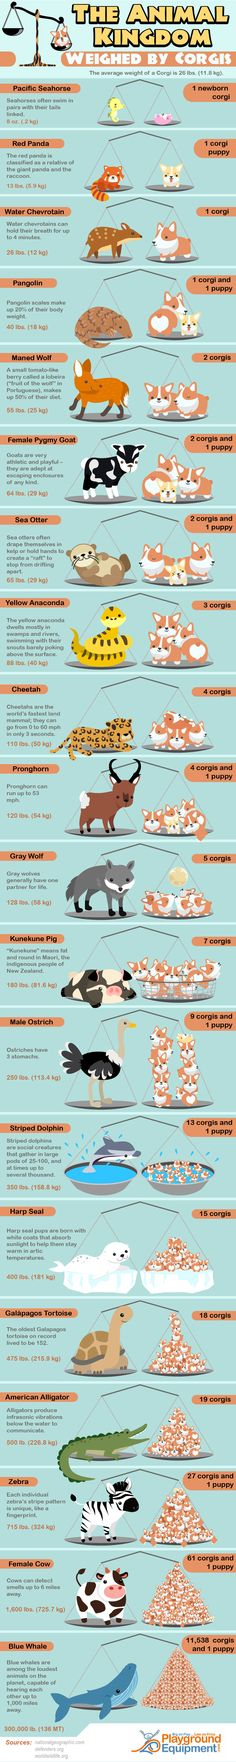 The animal kingdom weighed by corgis.